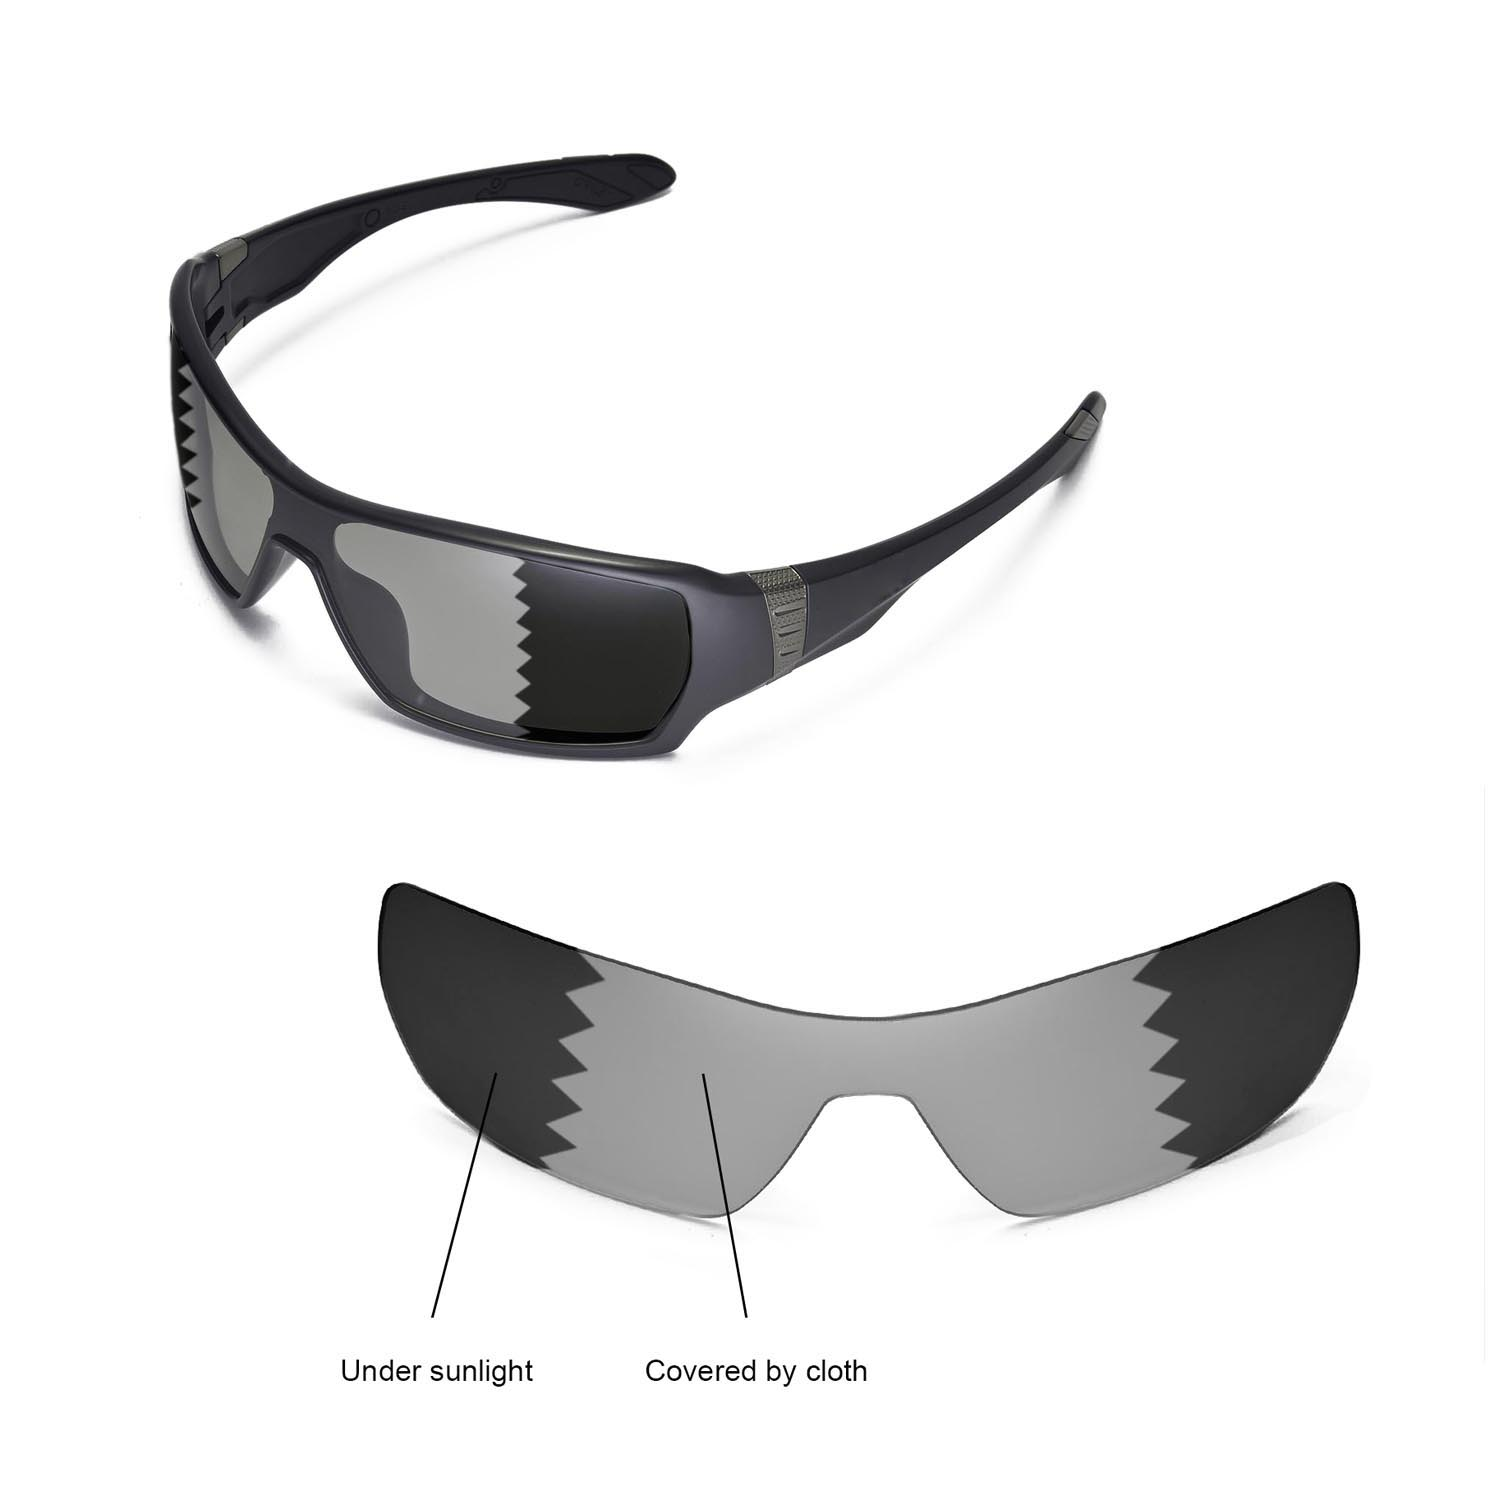 32862beeac Details about New WL Polarized Transition Replacement Lenses For Oakley  Offshoot Sunglasses